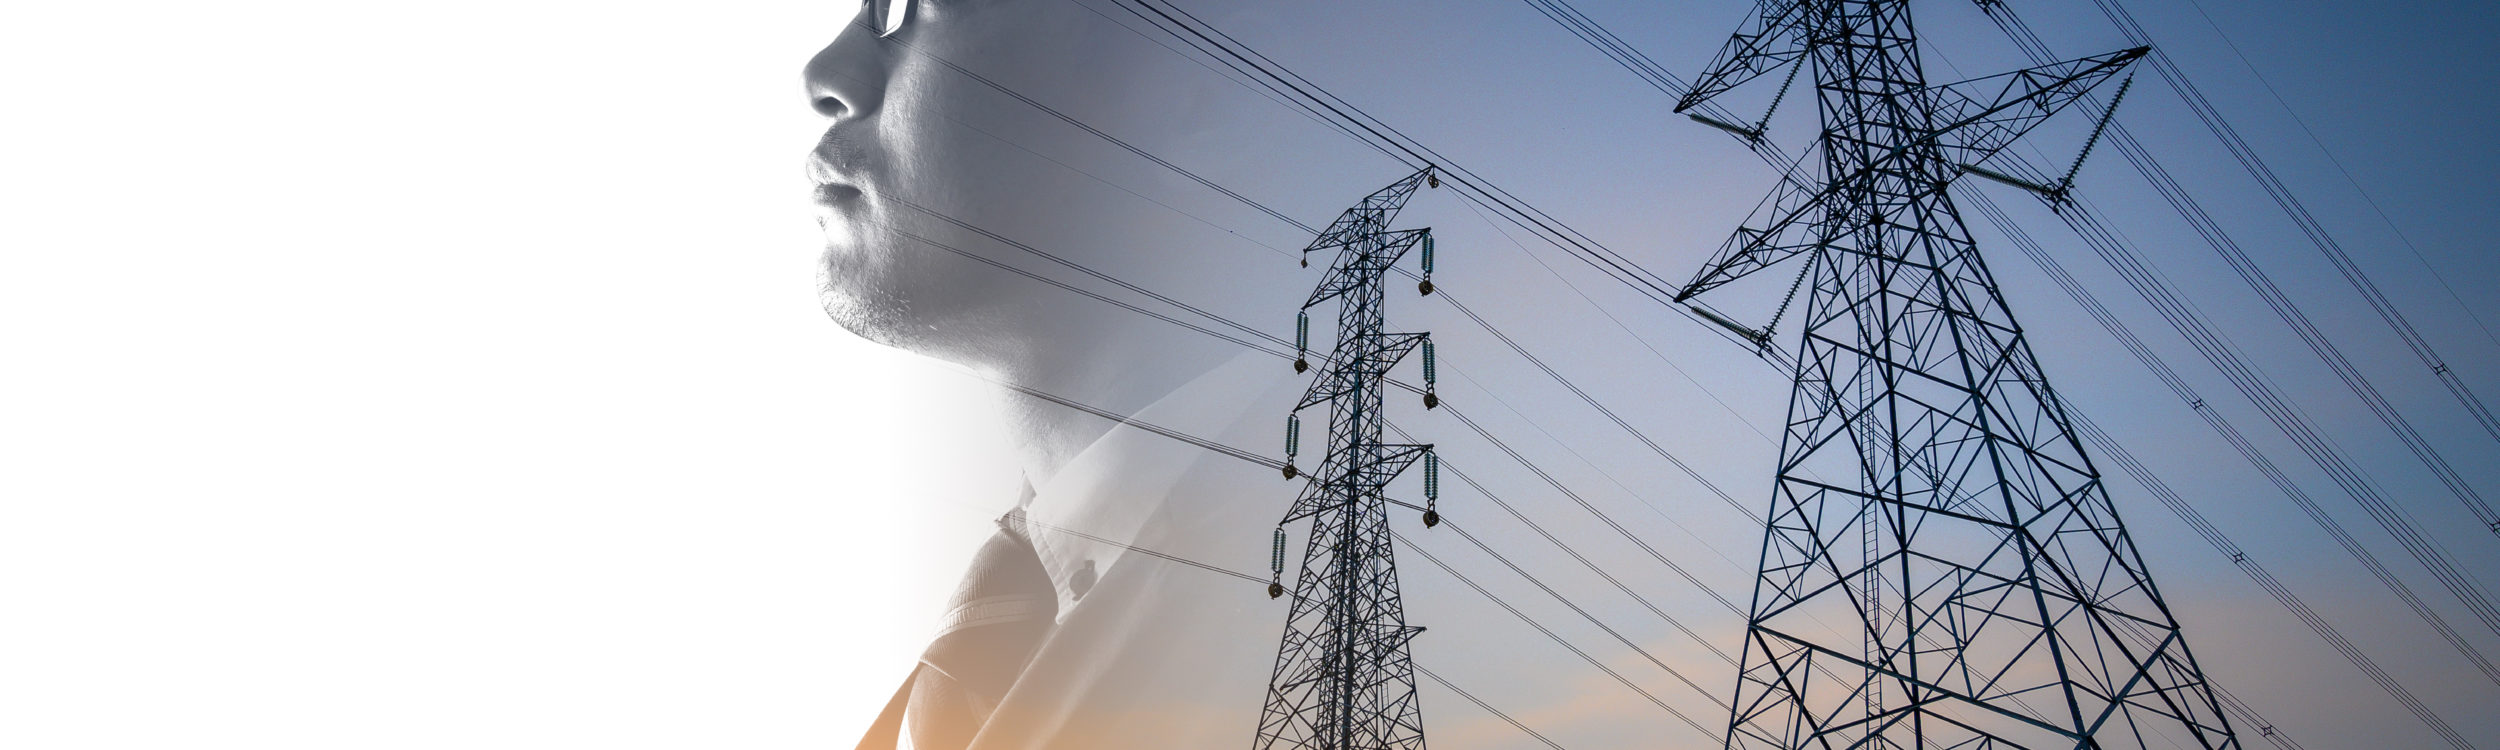 Operational Excellence in Utilities:PrioritizeYourMetrics with a Balanced Scorecard featured image